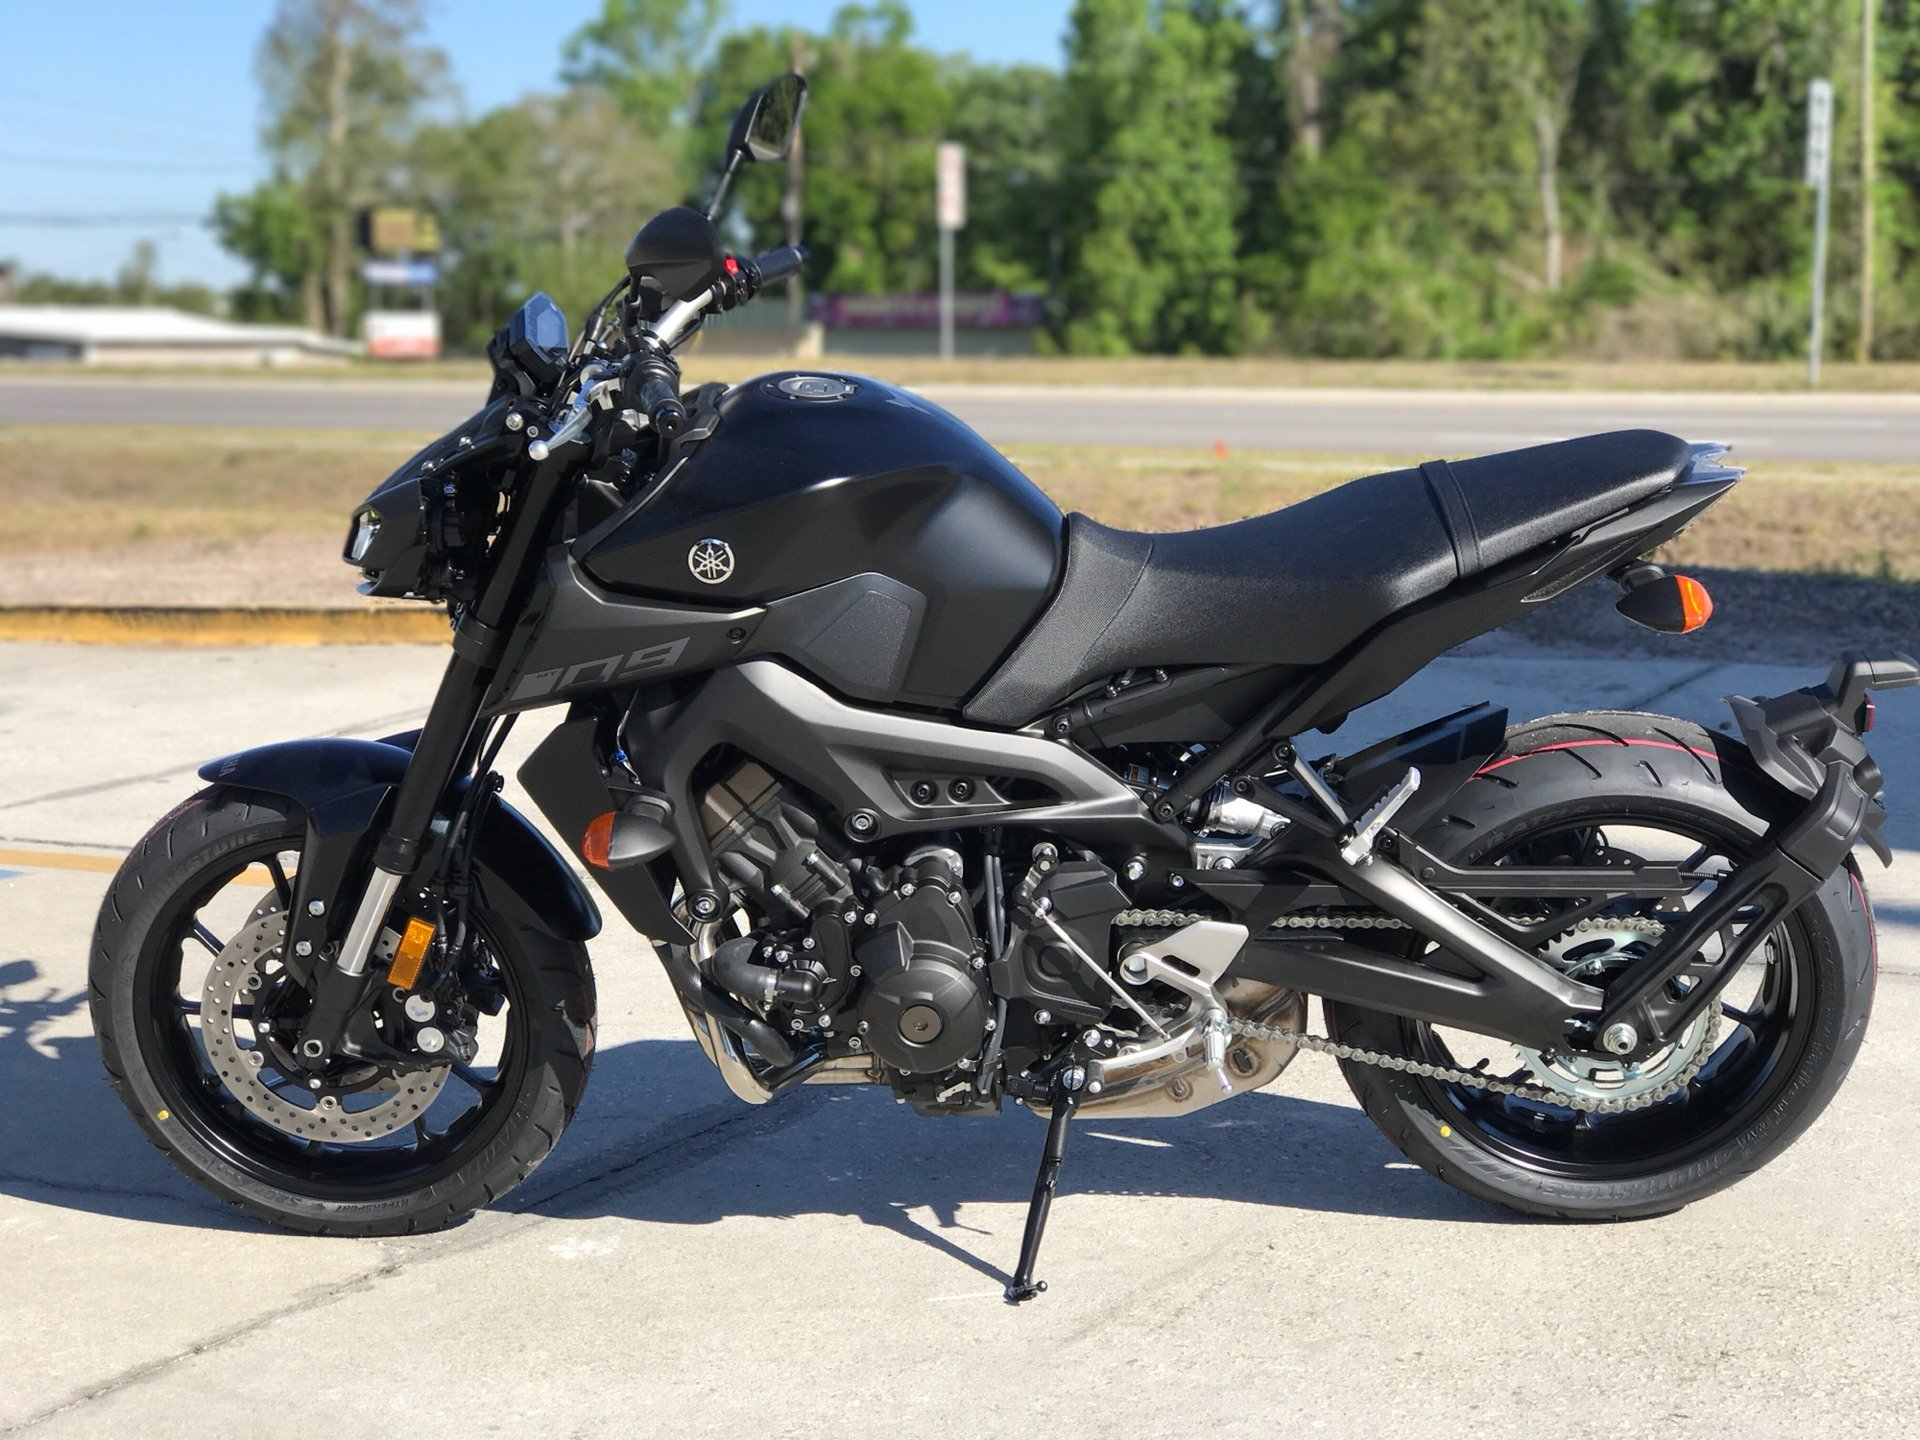 2018 Yamaha MT-09 in Orlando, Florida - Photo 1